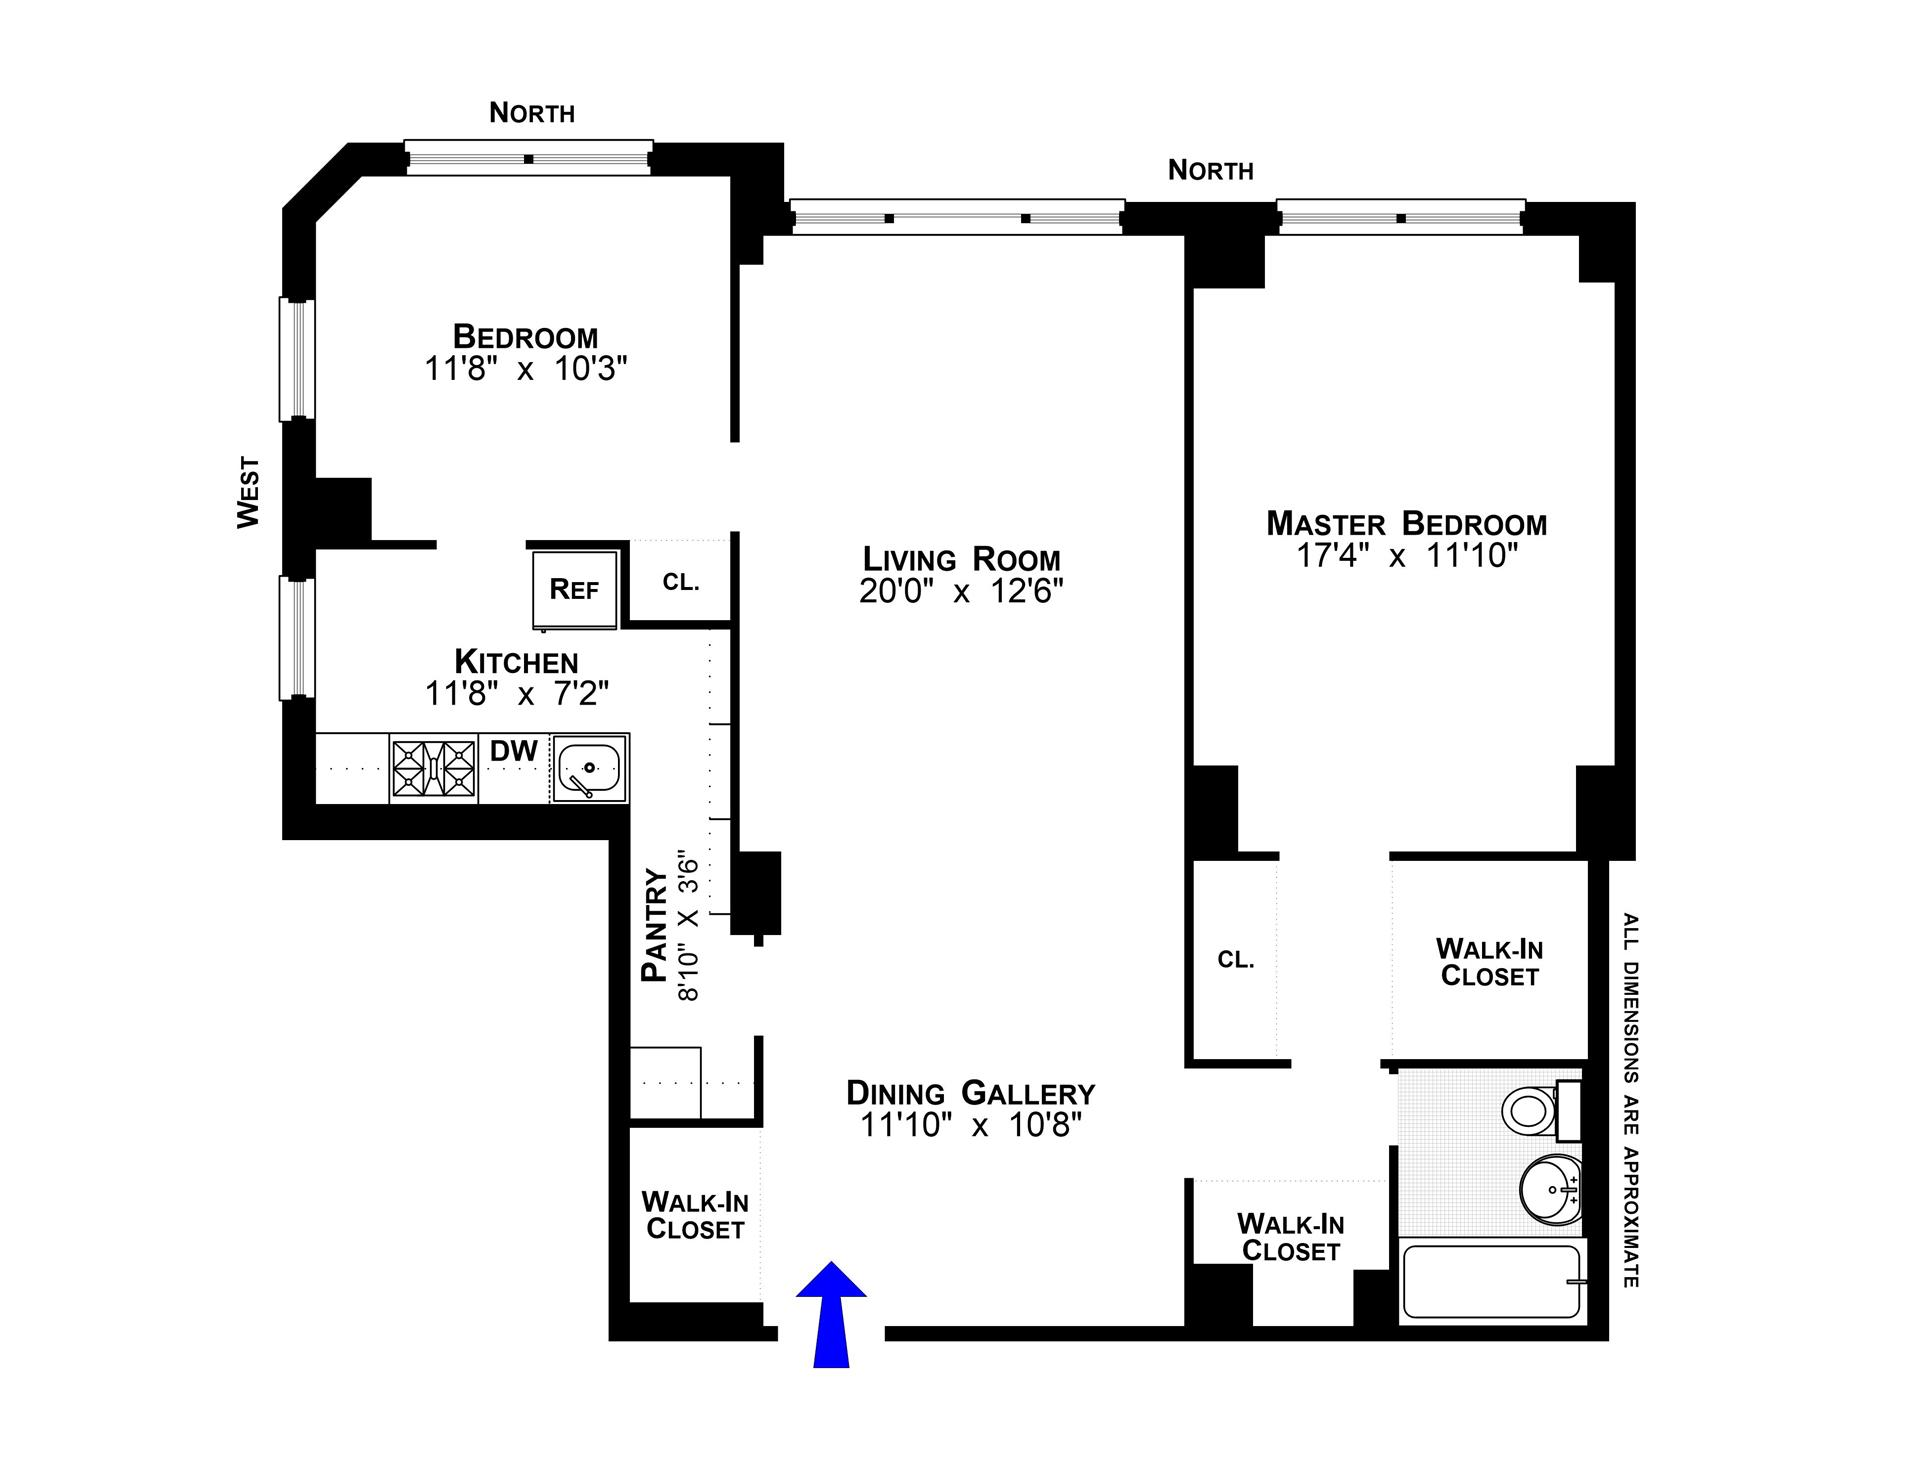 Floor plan of EAST RIVER HOUSE, 505 East 79th St, 2C - Upper East Side, New York